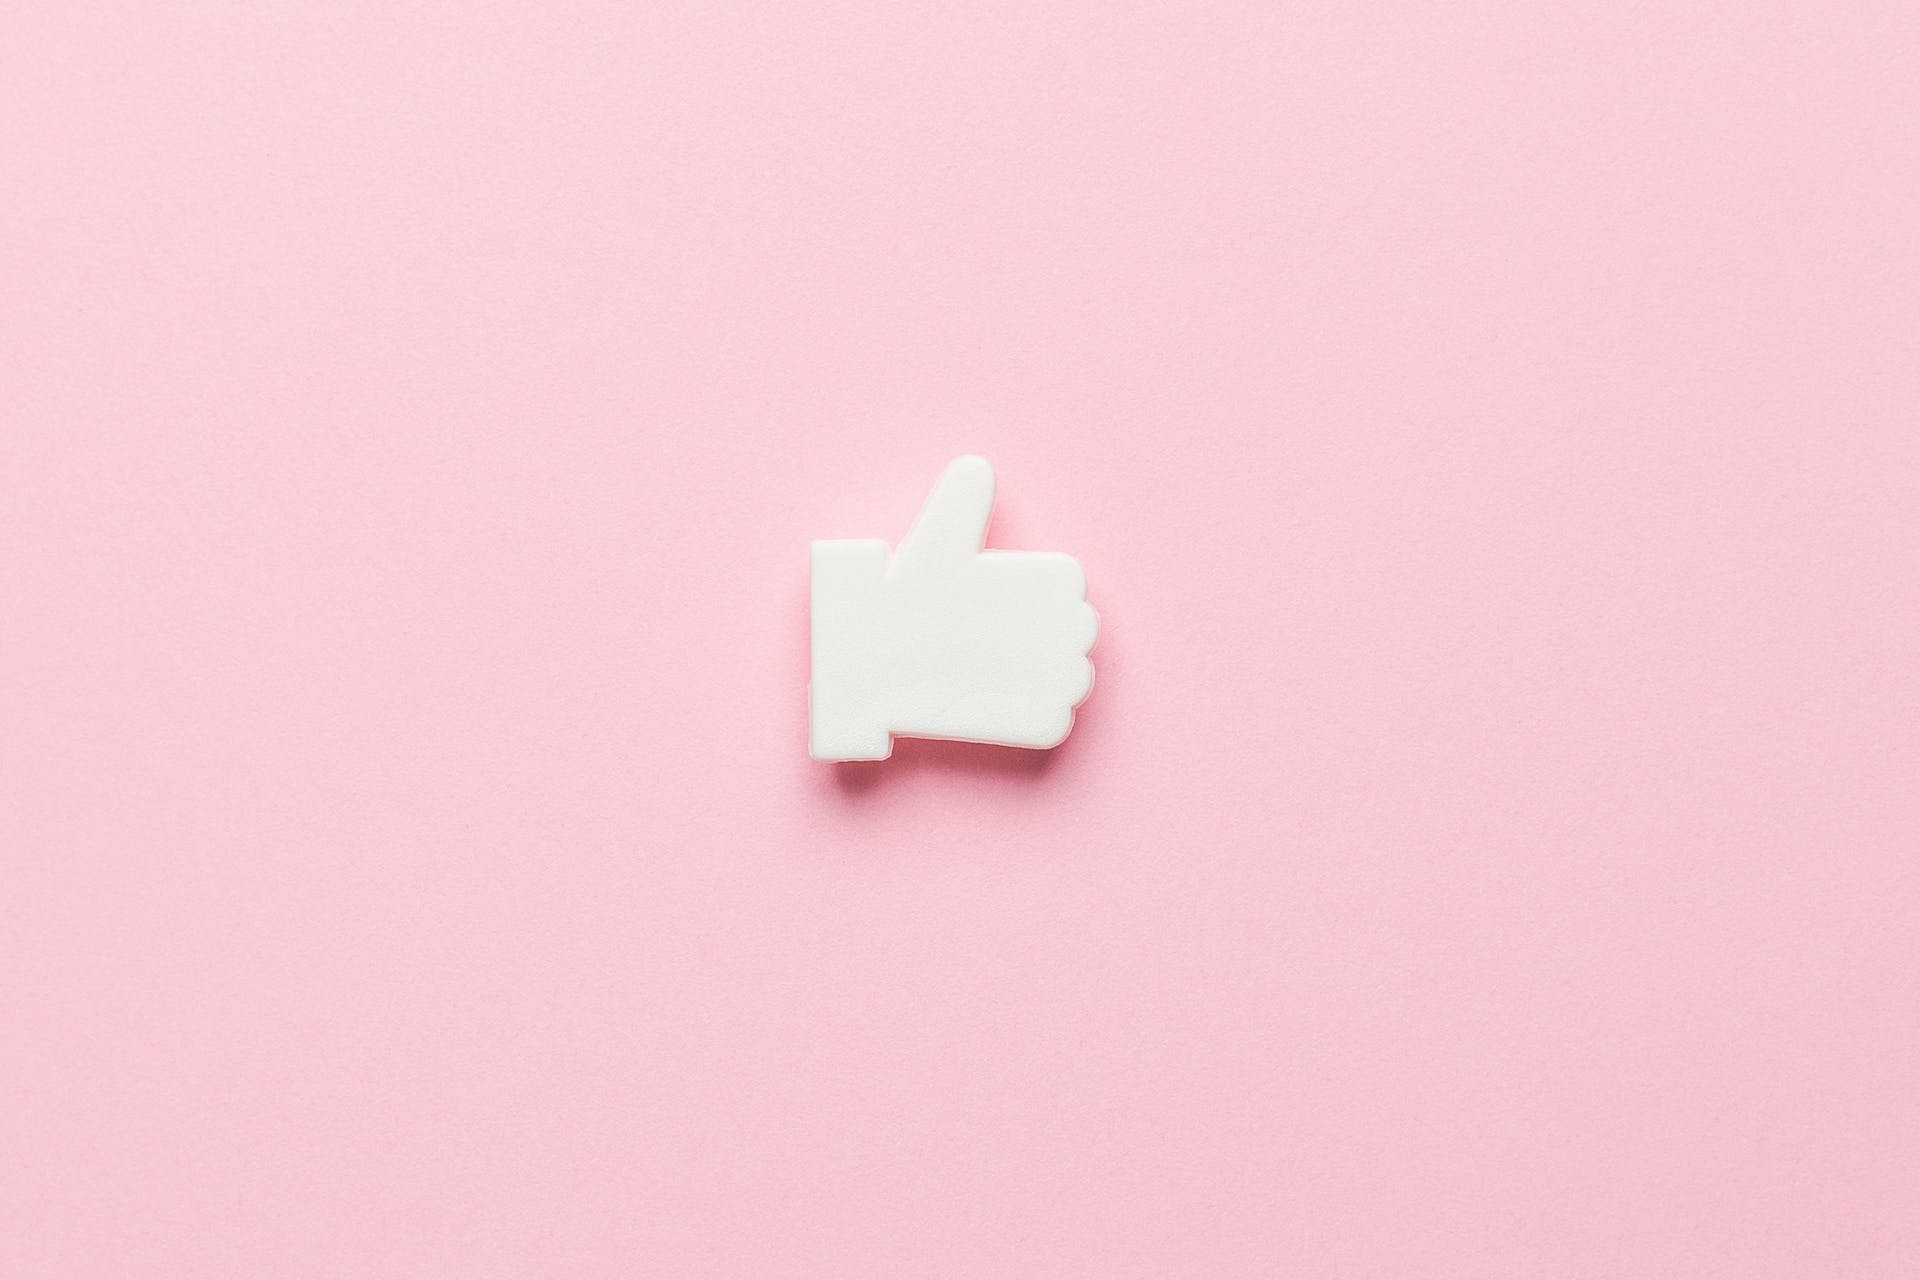 """Facebook thumbs up """"like"""" icon on pink background. Blog post: how to get more likes on your business Facebook page"""